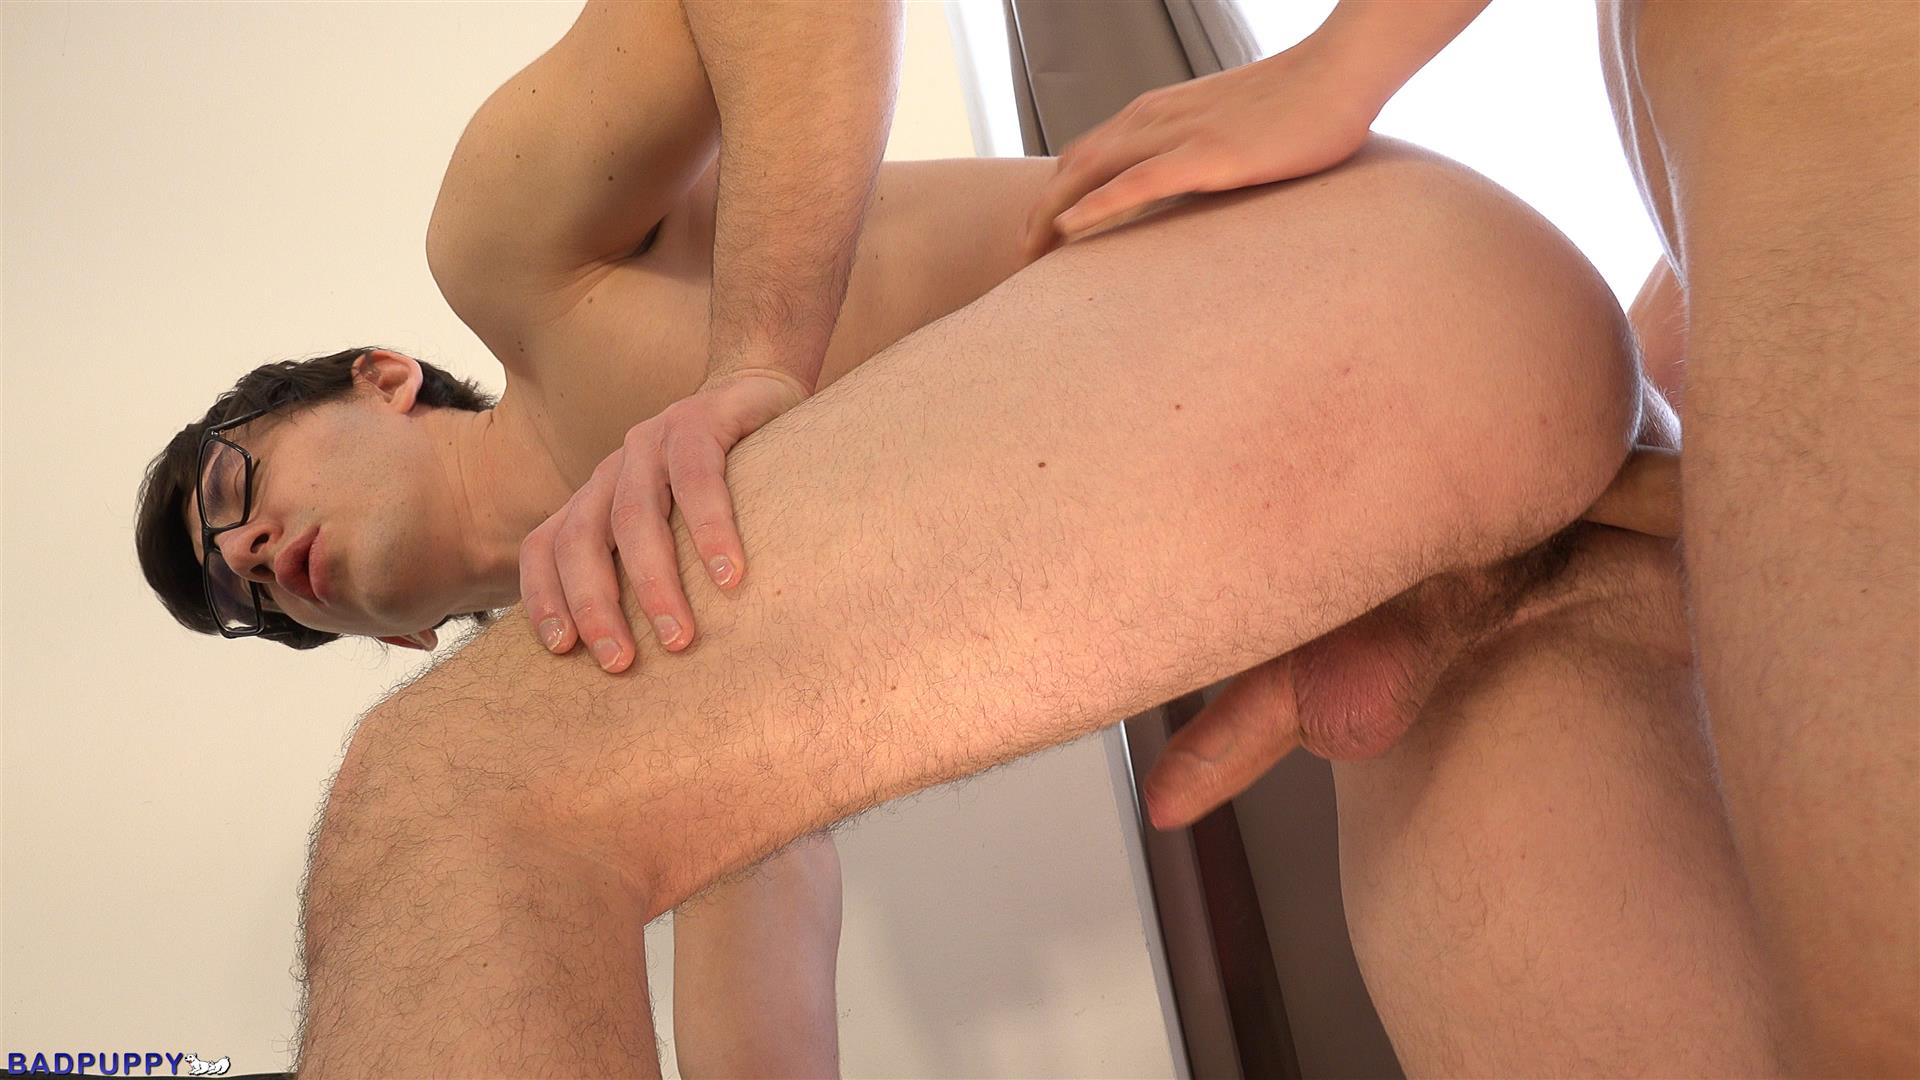 Badpuppy-Petr-Cisler-and-Roco-Rita-Hairy-Ass-Twinks-Bareback-Amateur-Gay-Porn-19 Nerdy Twink Gets Fucked With A Big Uncut Dick In His Hairy Ass